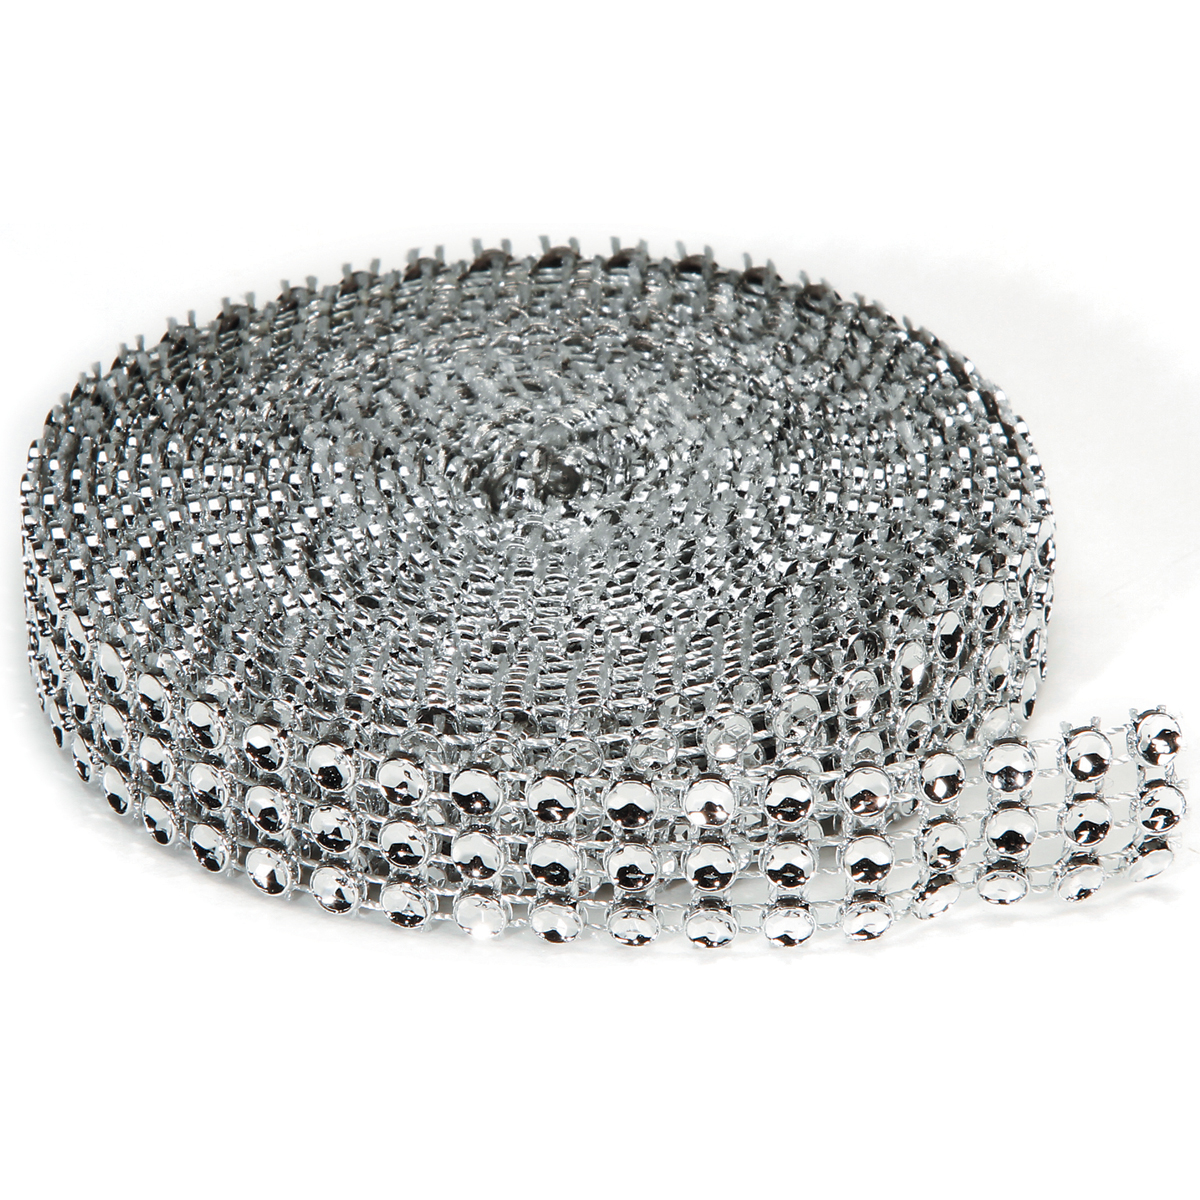 Darice Bling On A Roll Silver 4mm x 3 yards